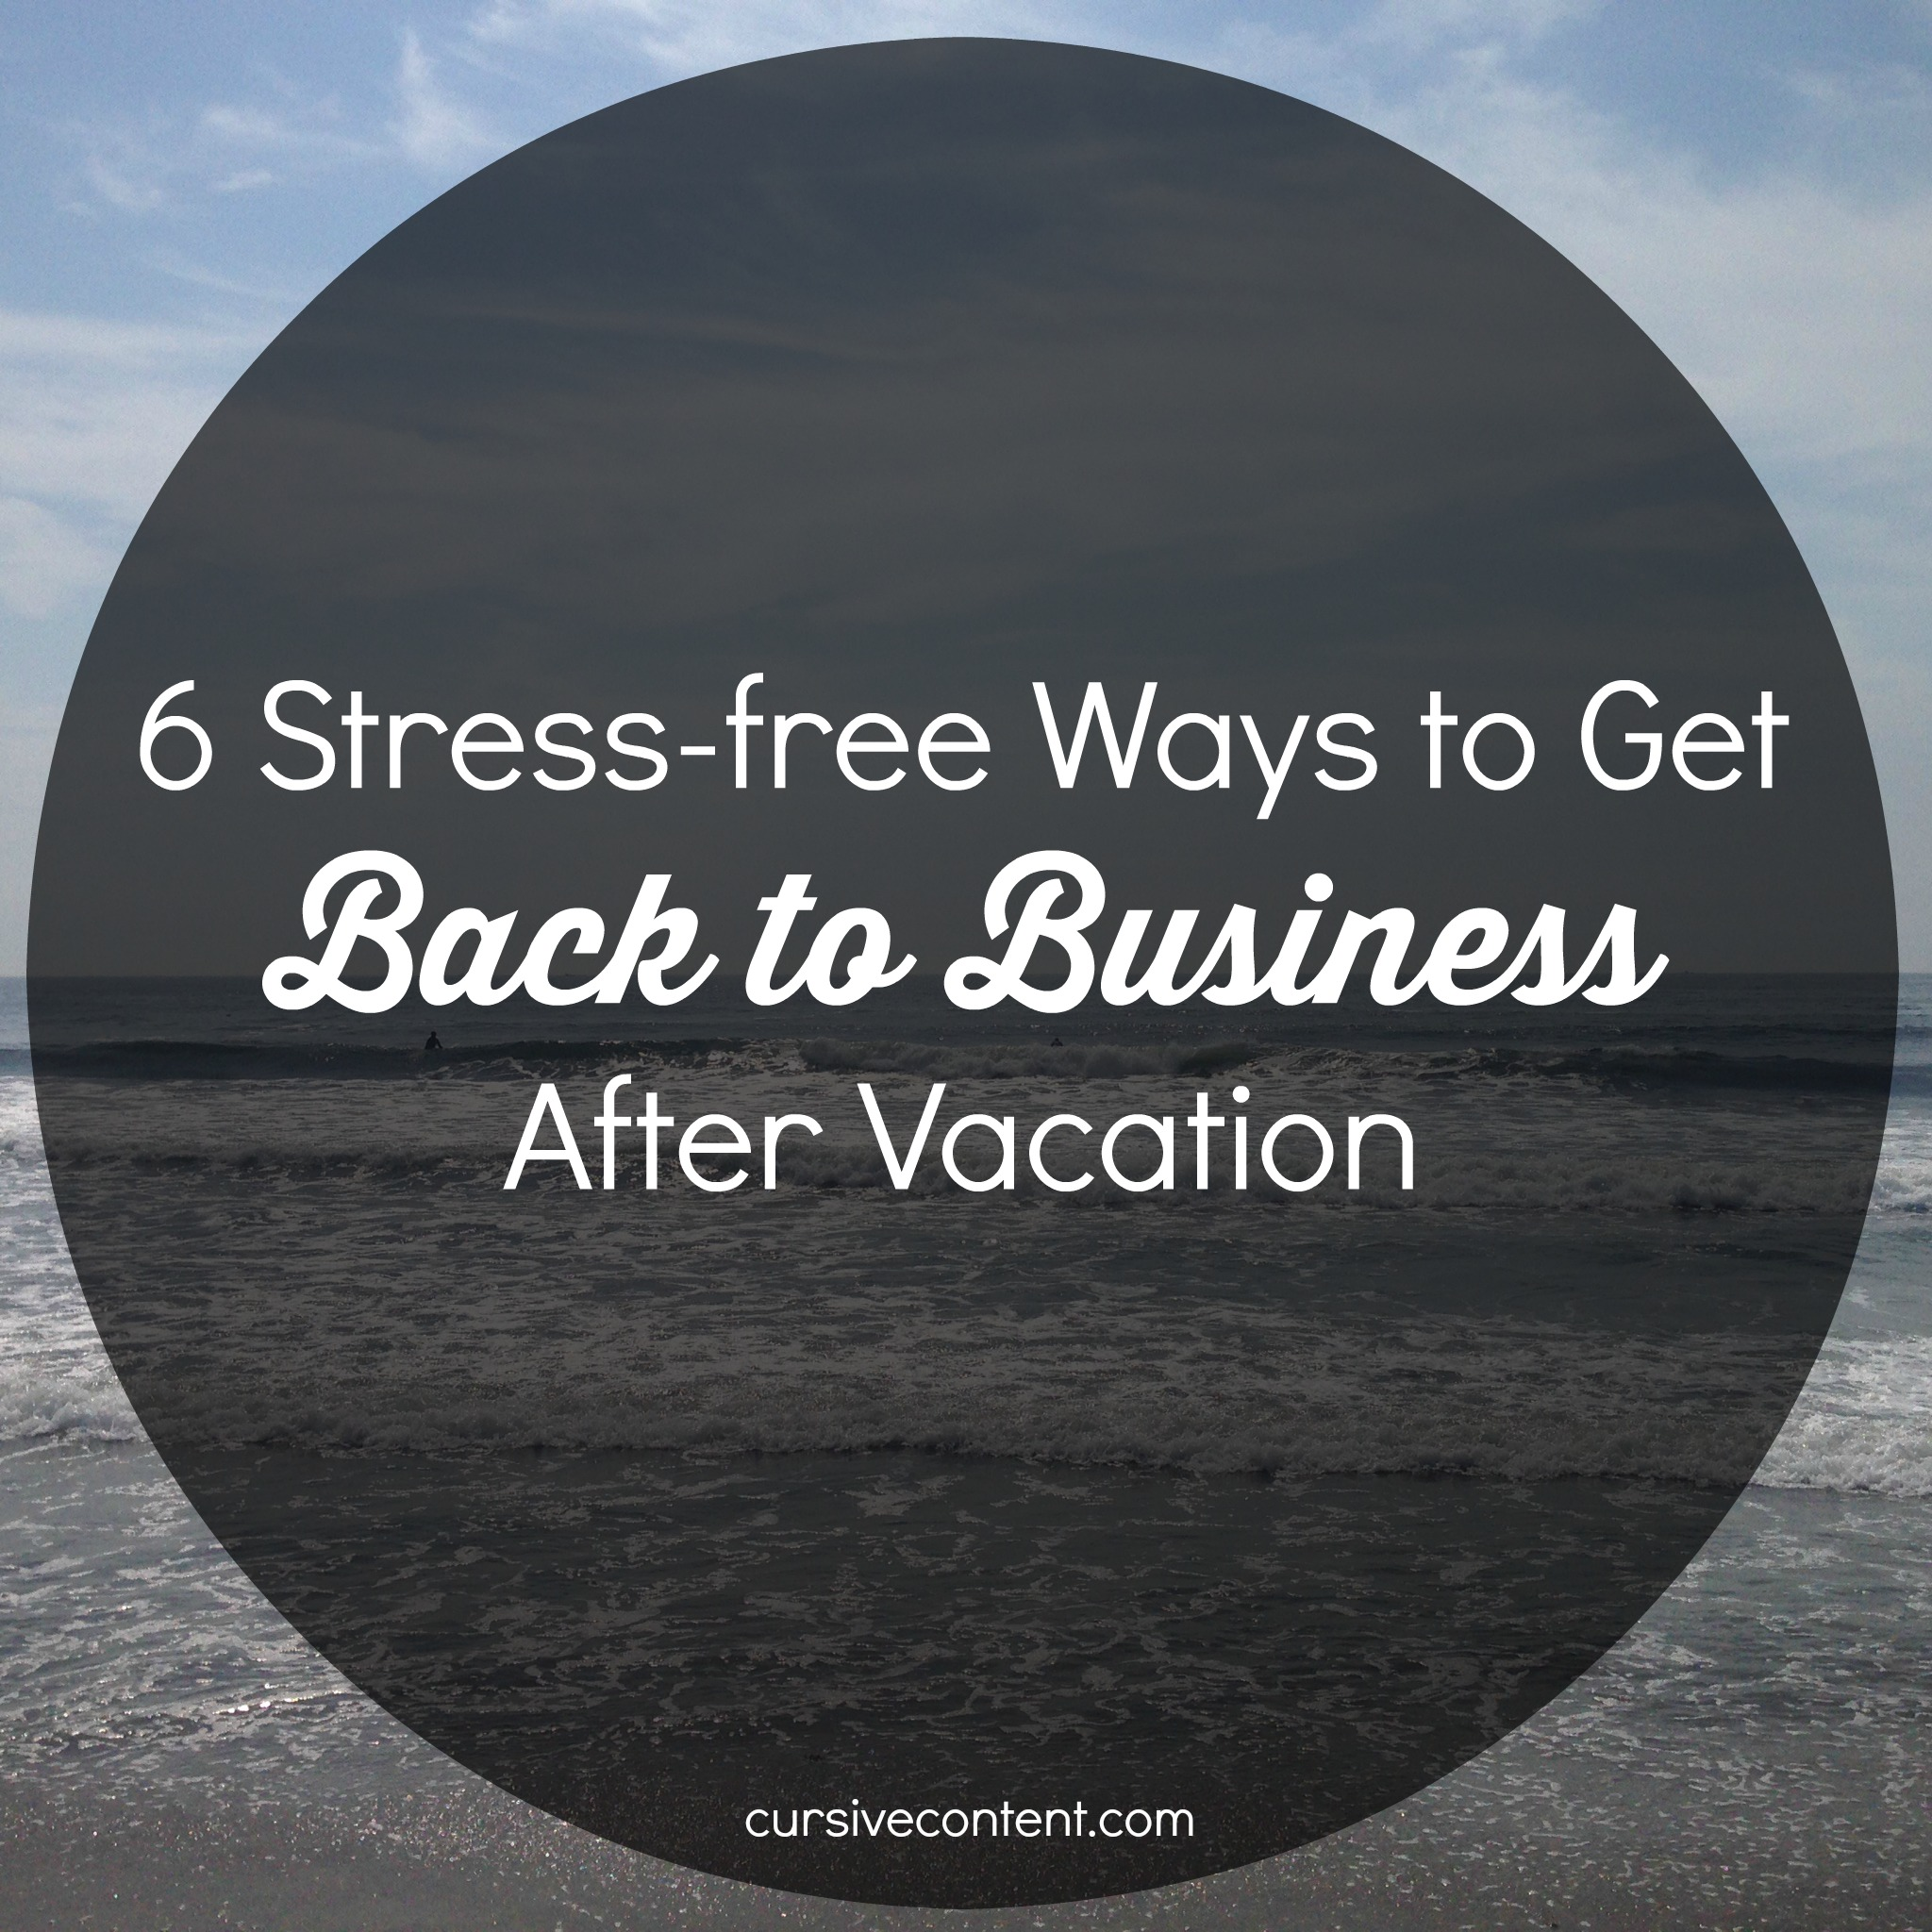 6 stress free ways to get back to business after vacation